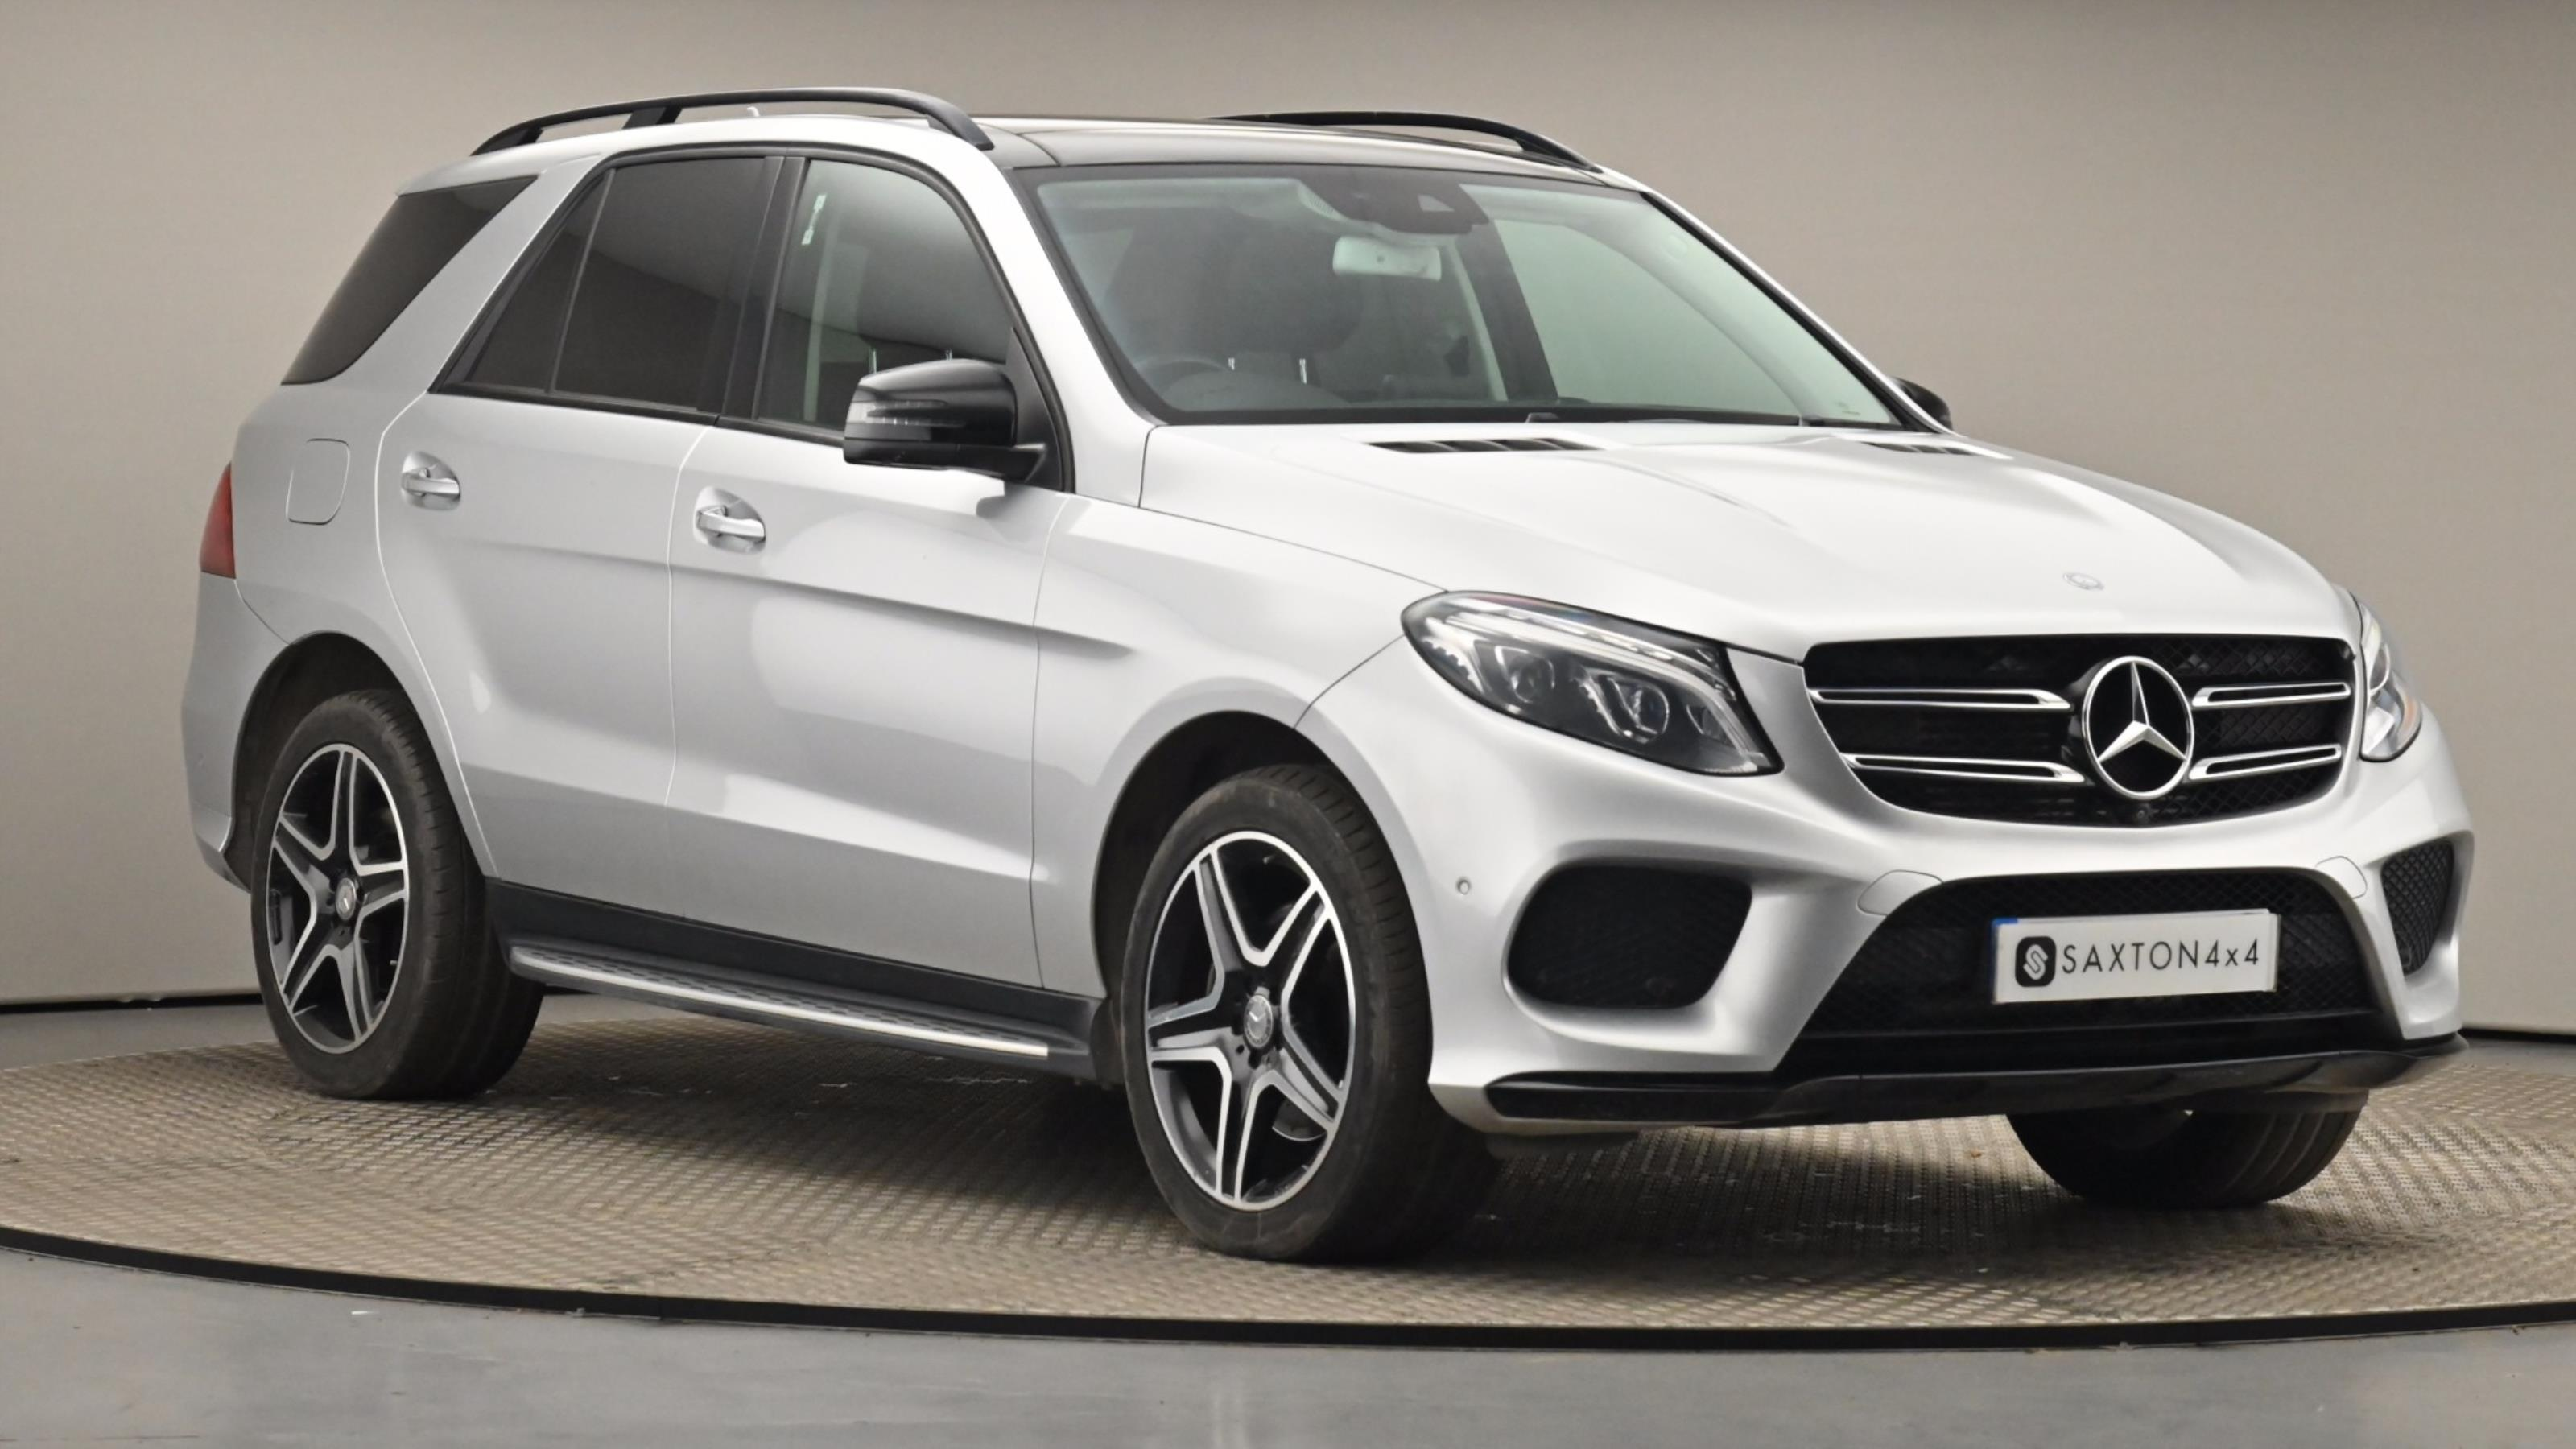 Used 2016 Mercedes-Benz GLE GLE 250d 4Matic AMG Line Prem Plus 5dr 9G-Tronic SILVER at Saxton4x4